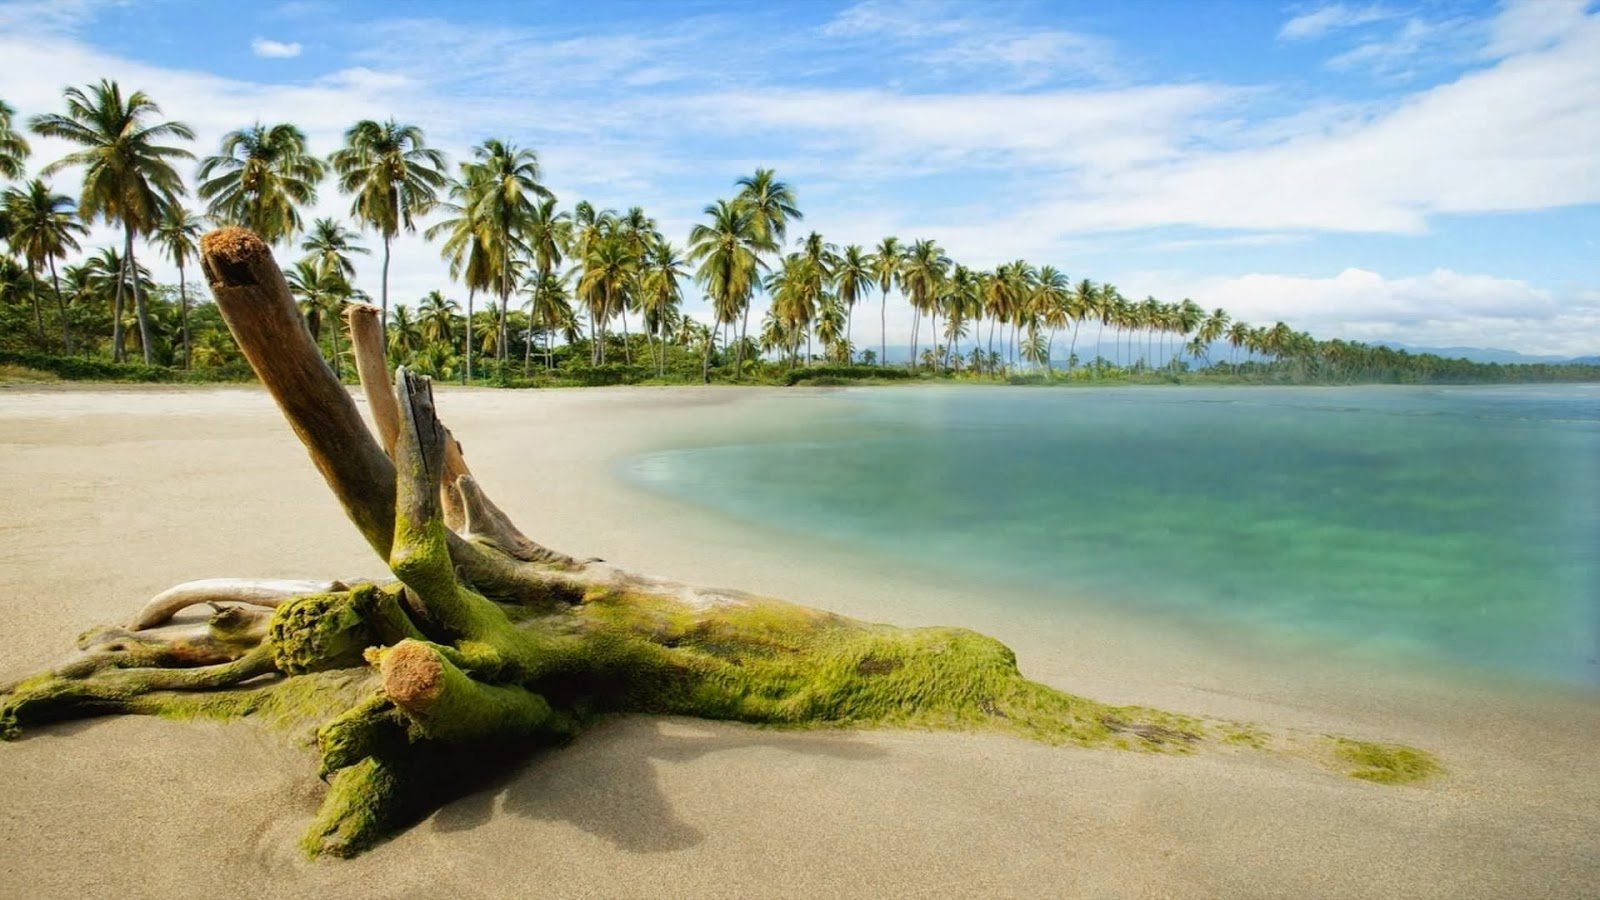 Beach-Nature-HD-1080p-Widescreen-HD-Blog-wallpaper-wpc5802592